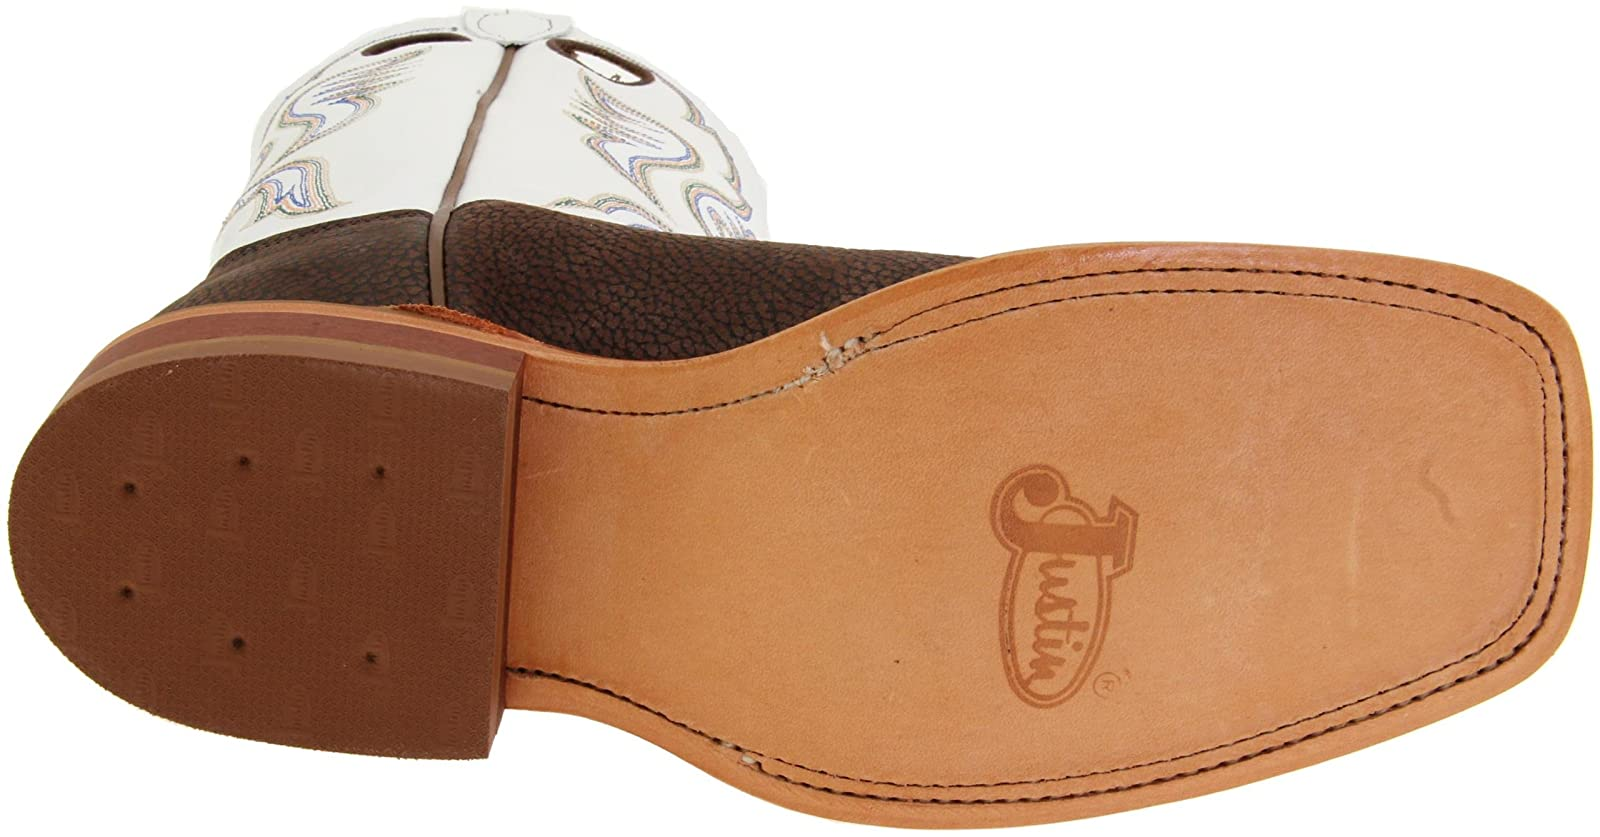 Justin Boots Men's U.S.A. Chocolate Bisonte/White Classic - 3